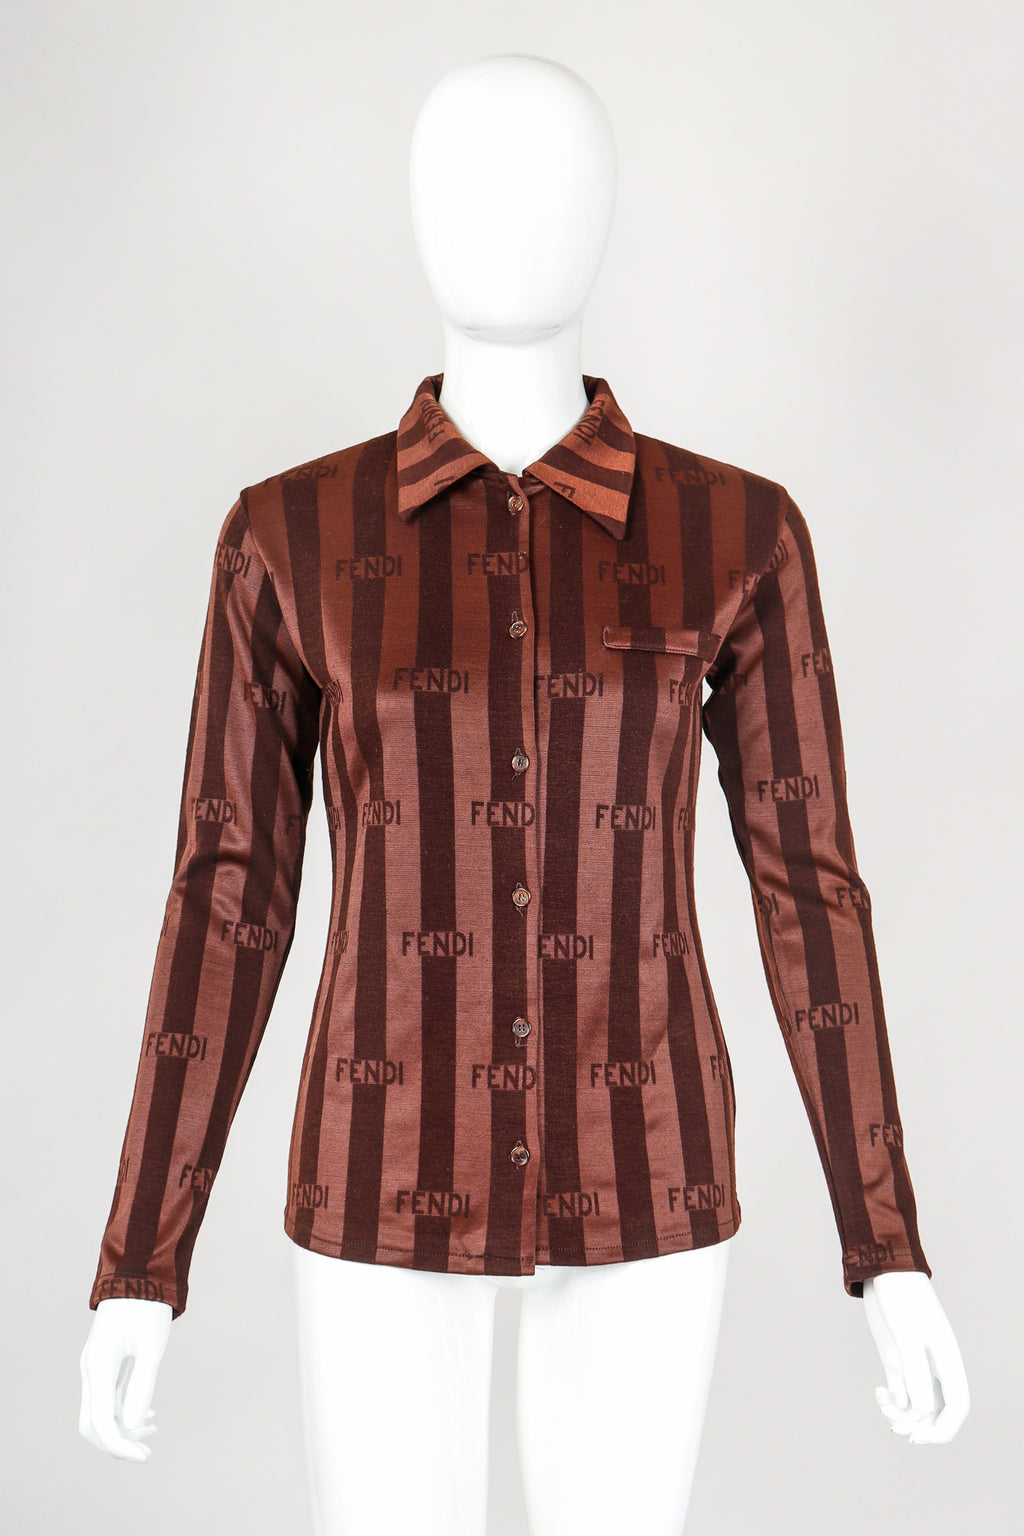 Recess Vintage Fendi Brown Shiny Striped Knit Collared Shirt on Mannequin, front